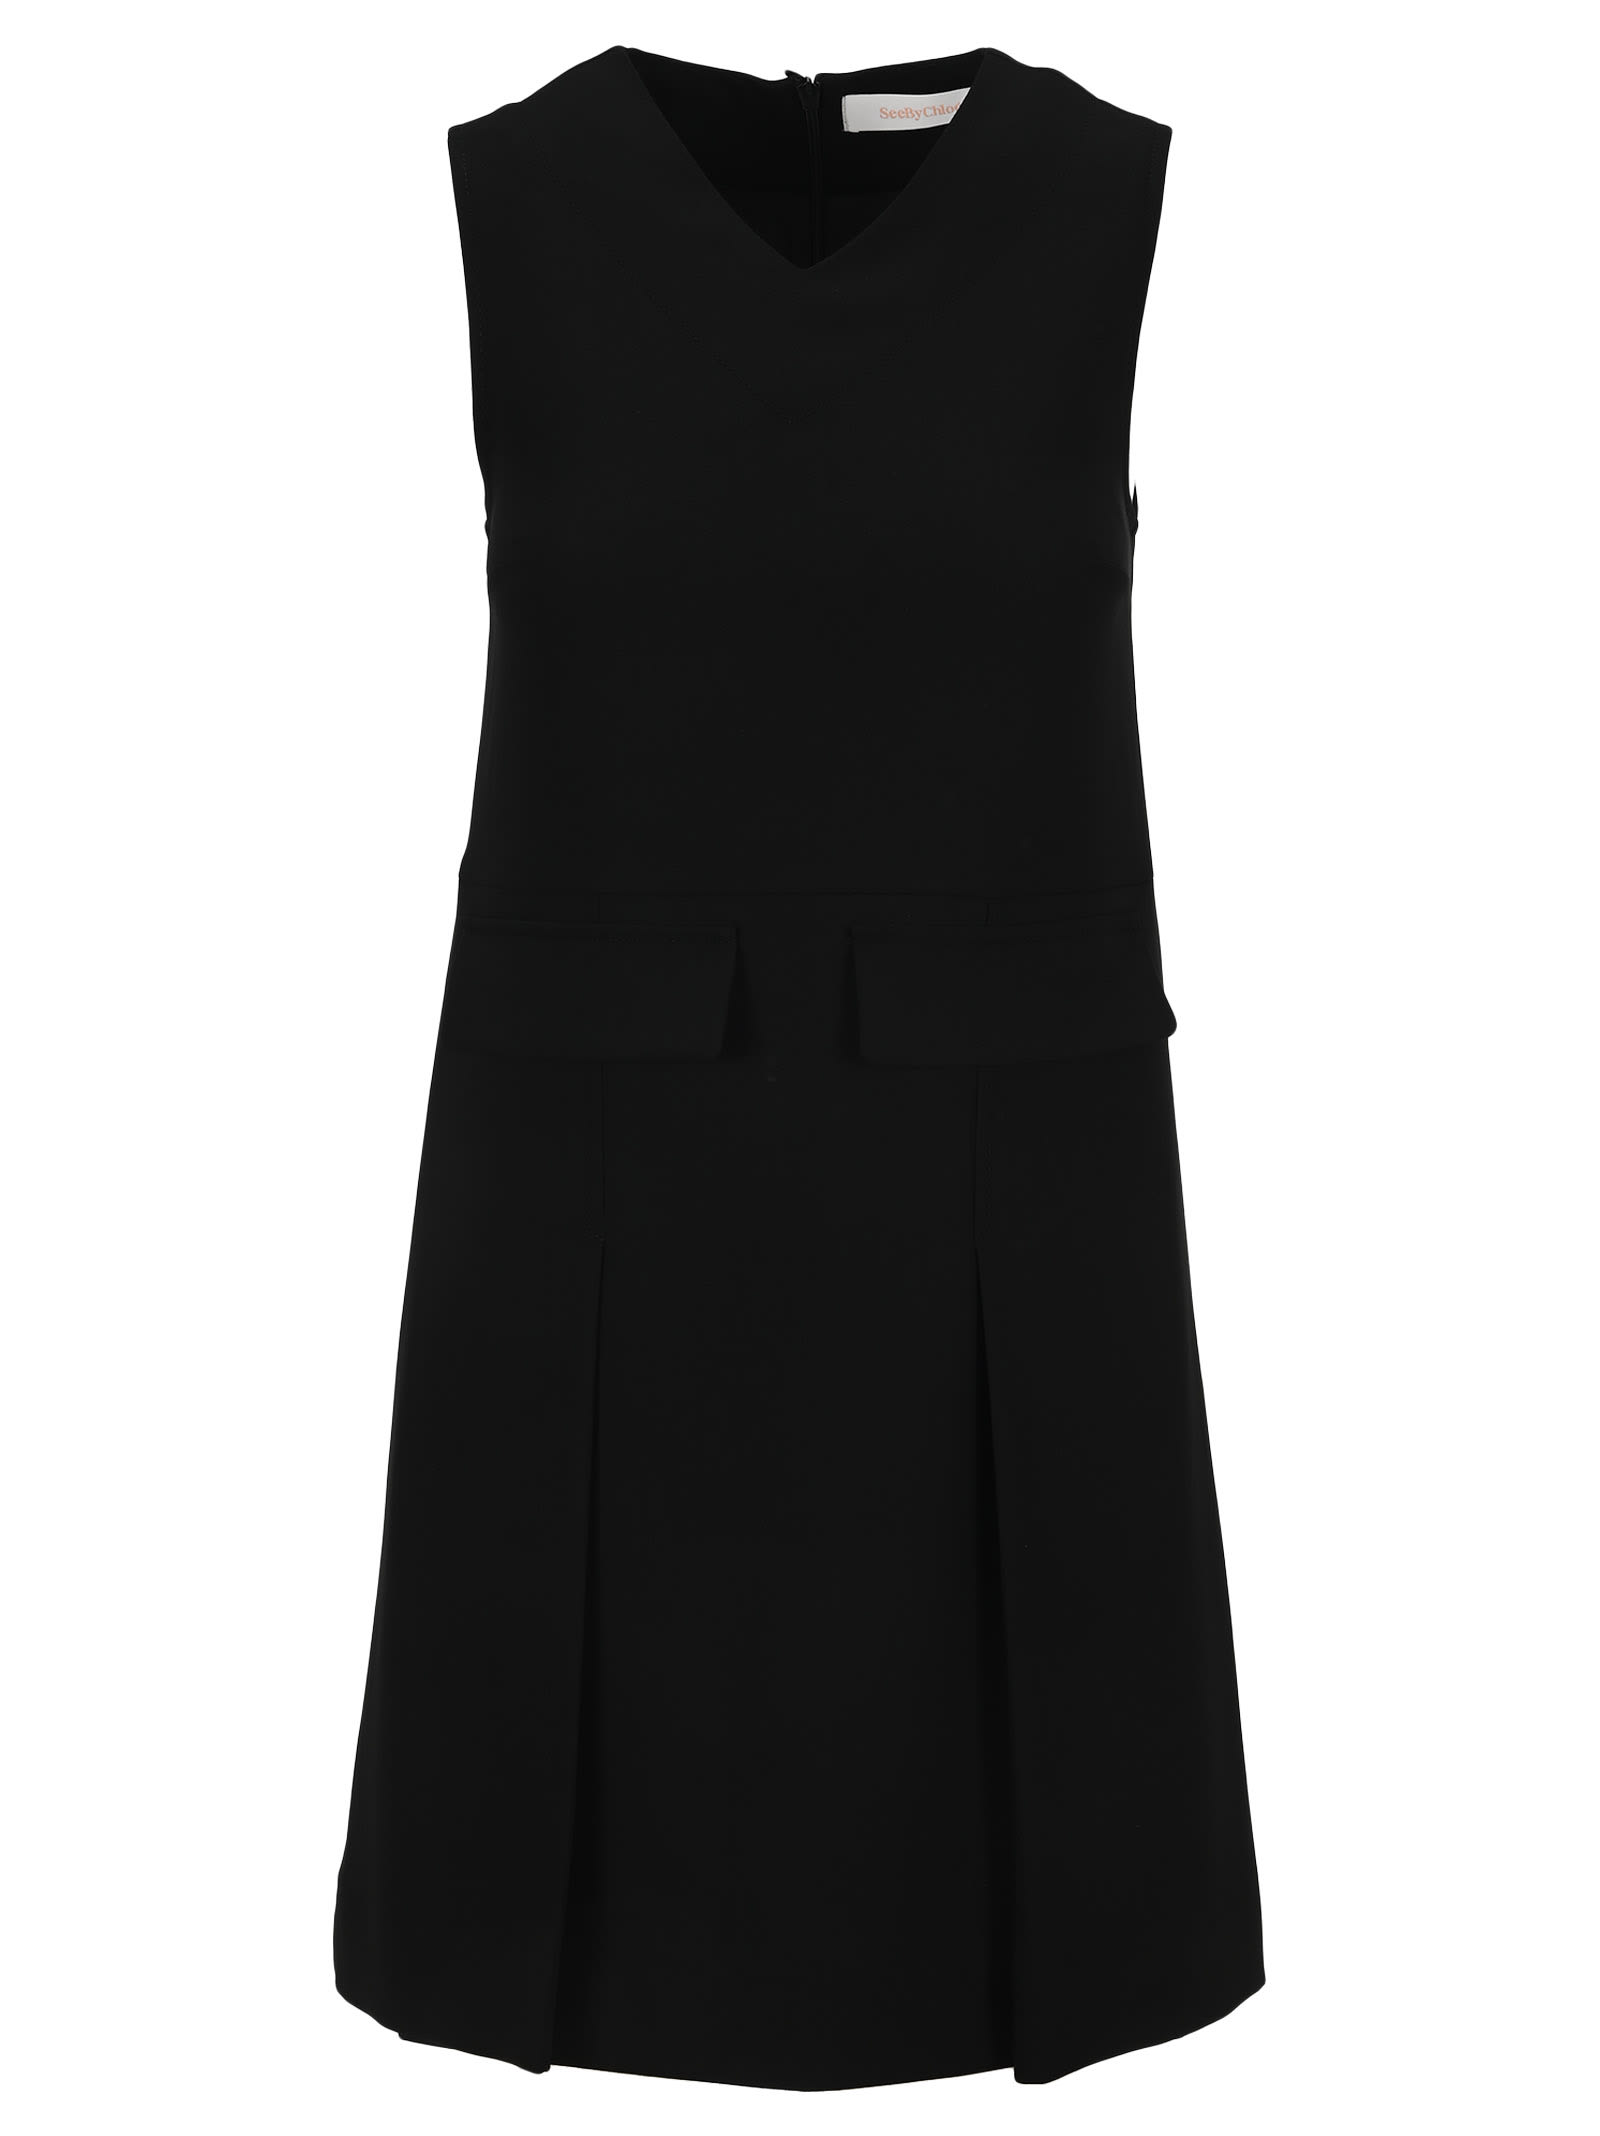 Buy See By Chloe Sleeveless V-neck Dress online, shop See by Chloé with free shipping